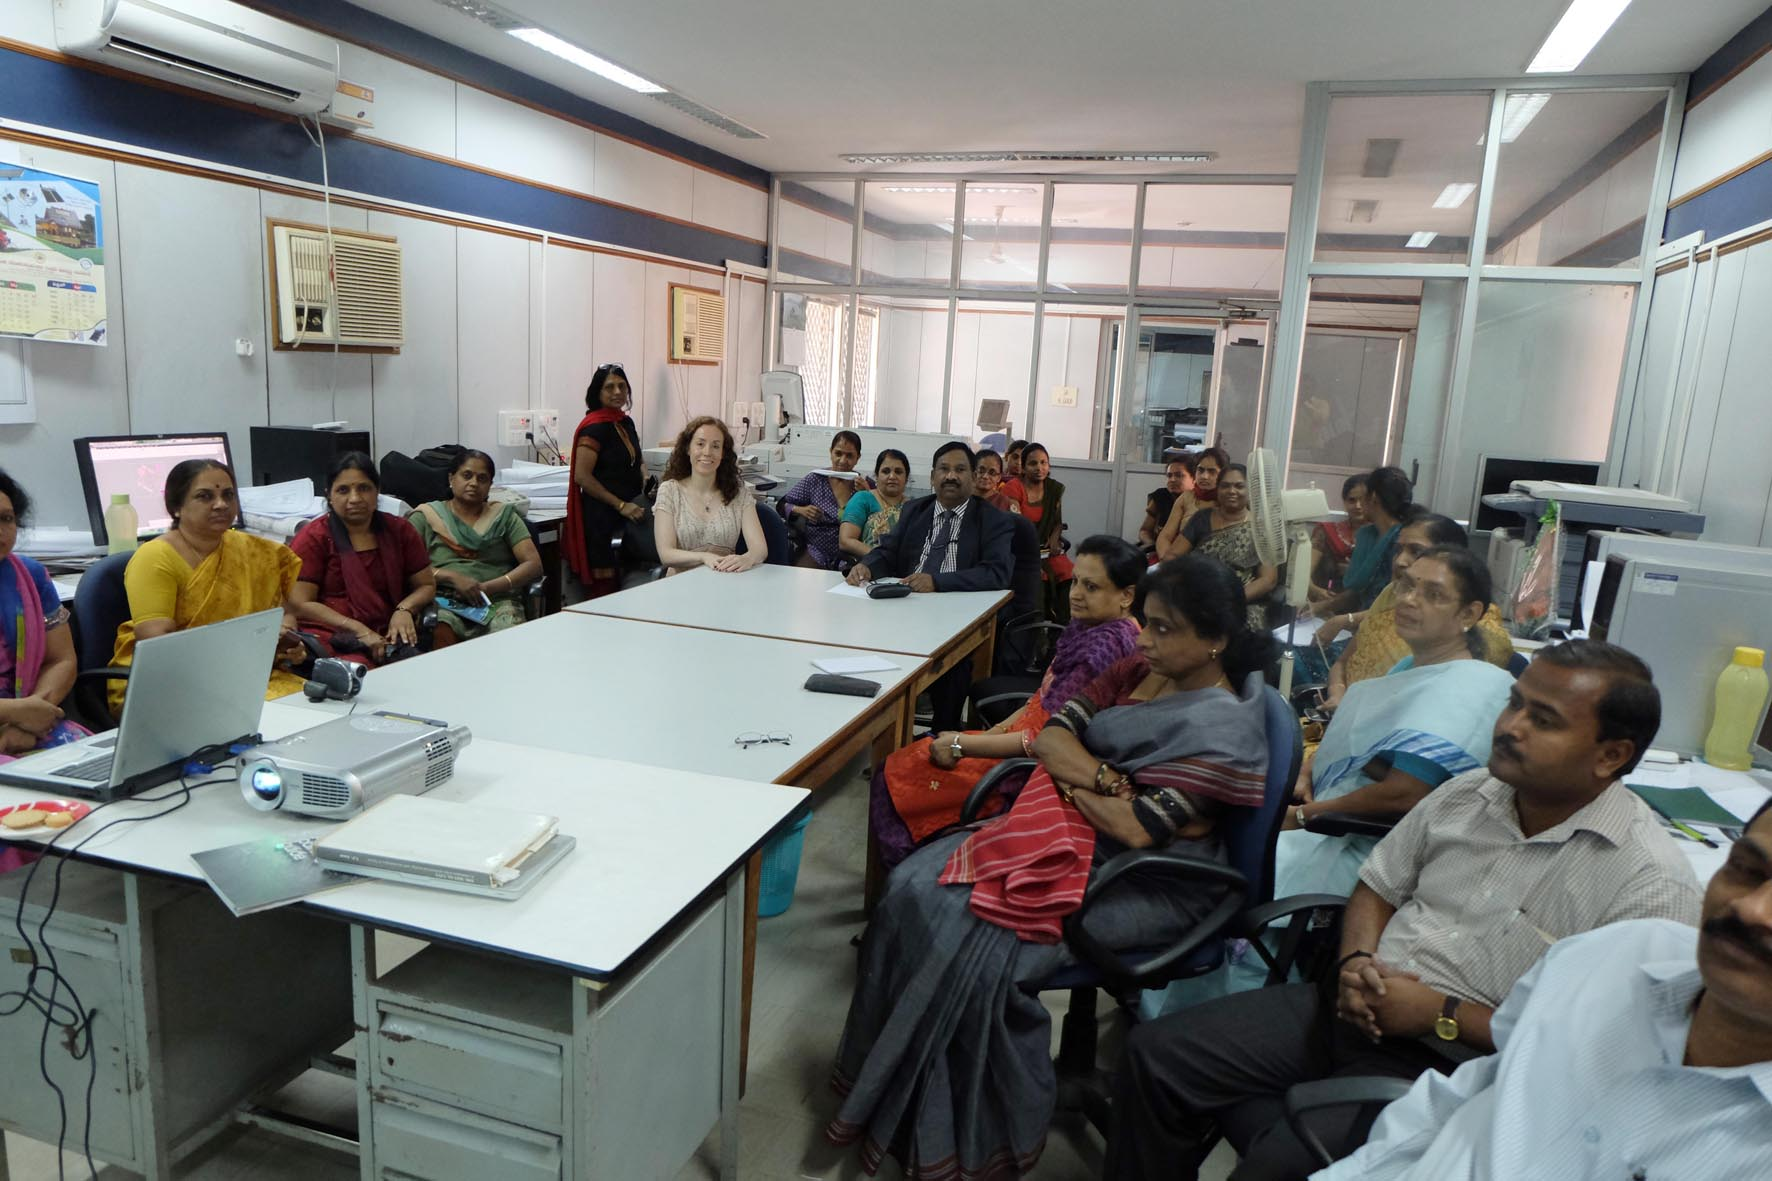 India current research lakshminarasappa koenigsberger for Architects in bangalore